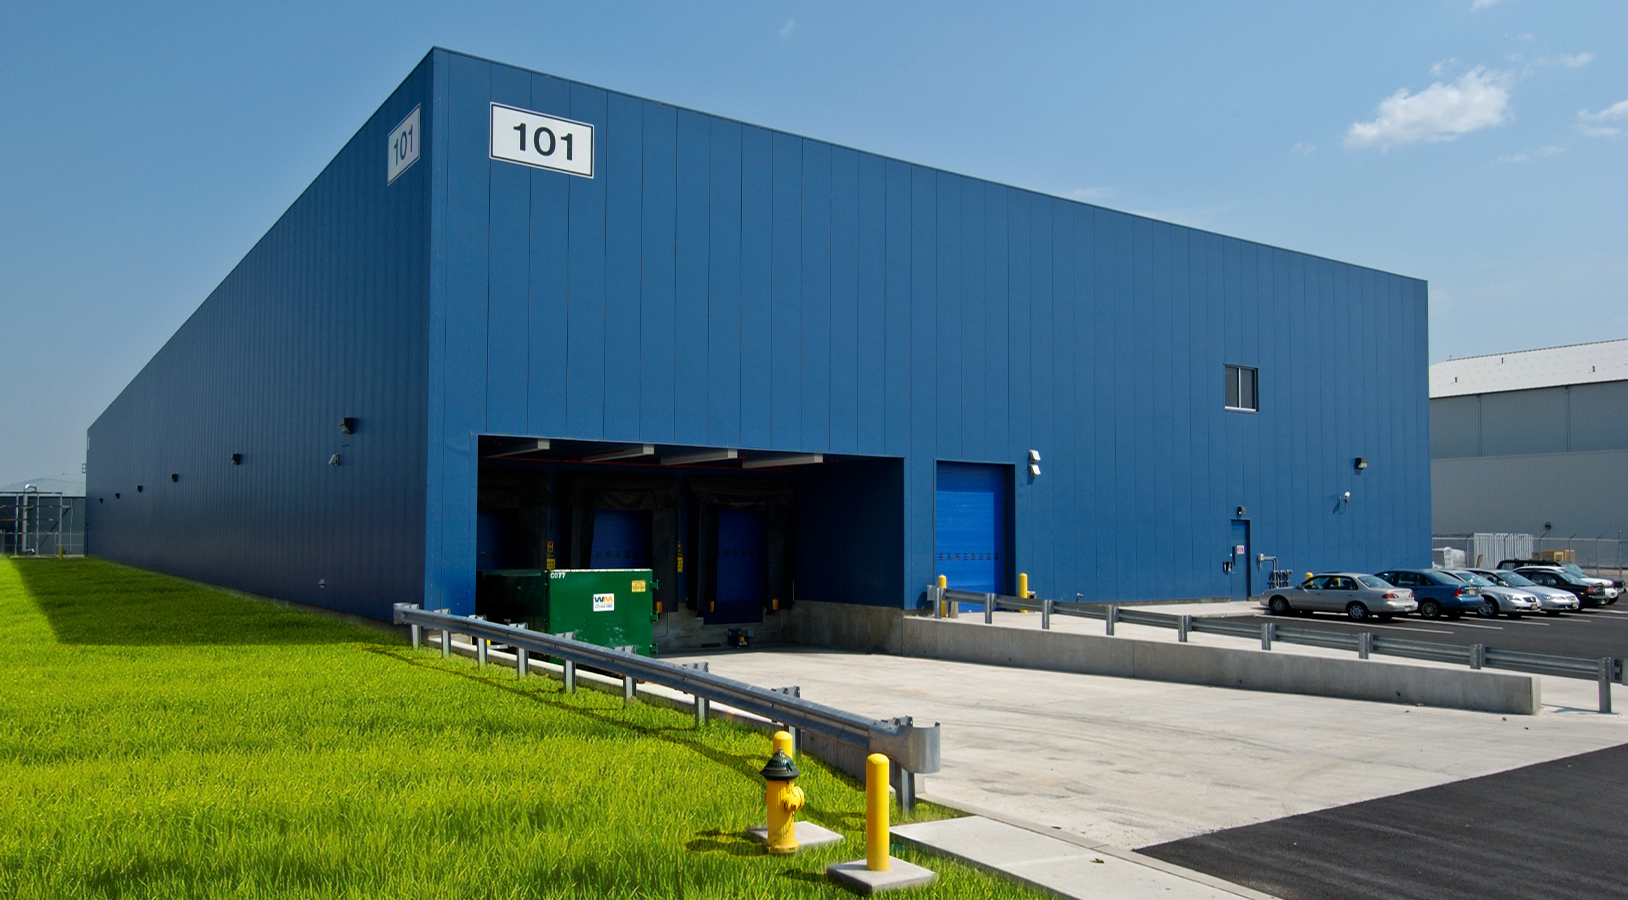 United Airlines | Storage Building at Newark Liberty International Airport